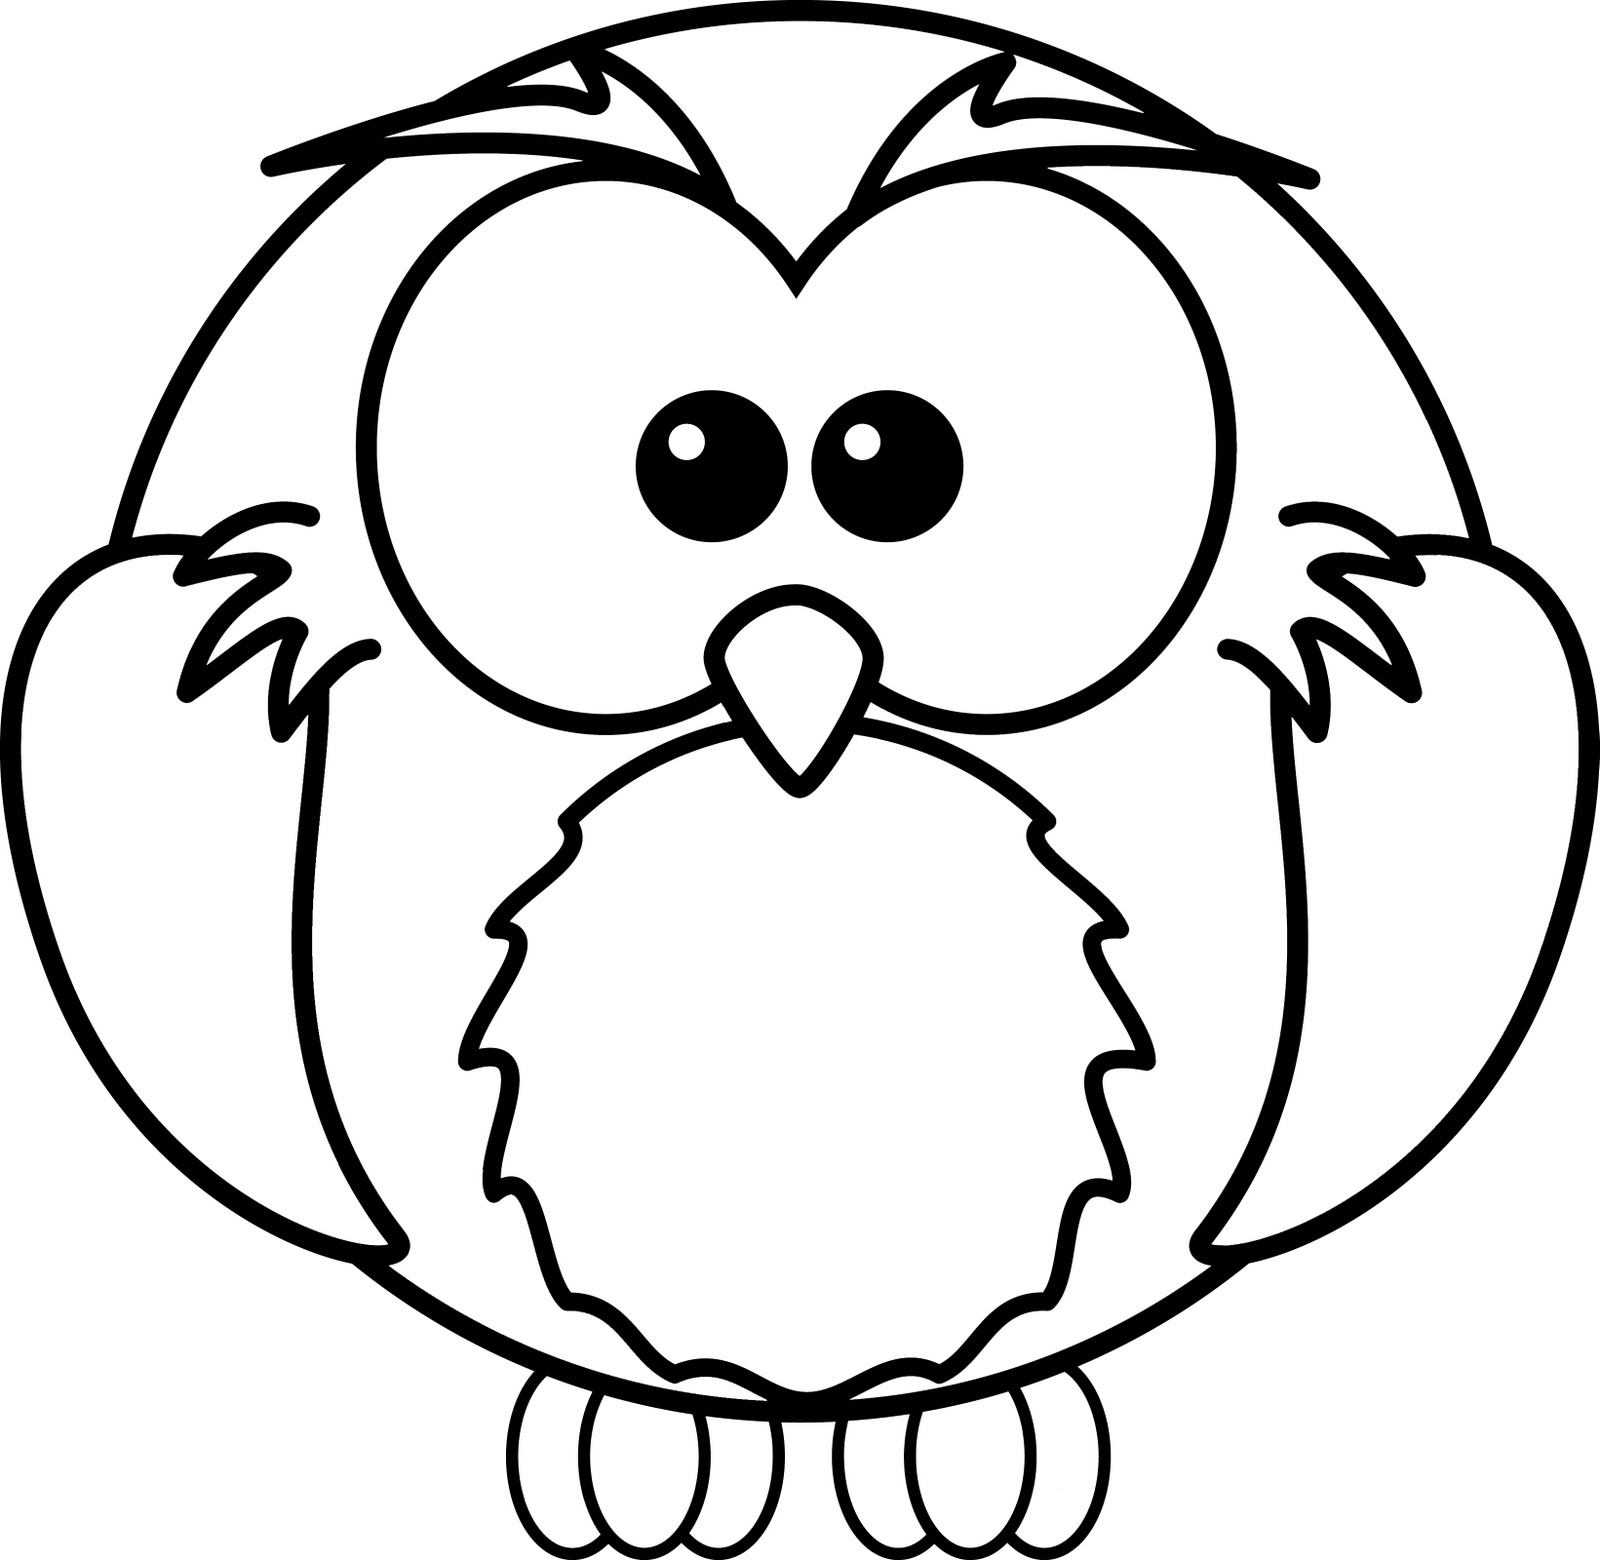 owl coloring page printable free owl coloring pages page owl printable coloring